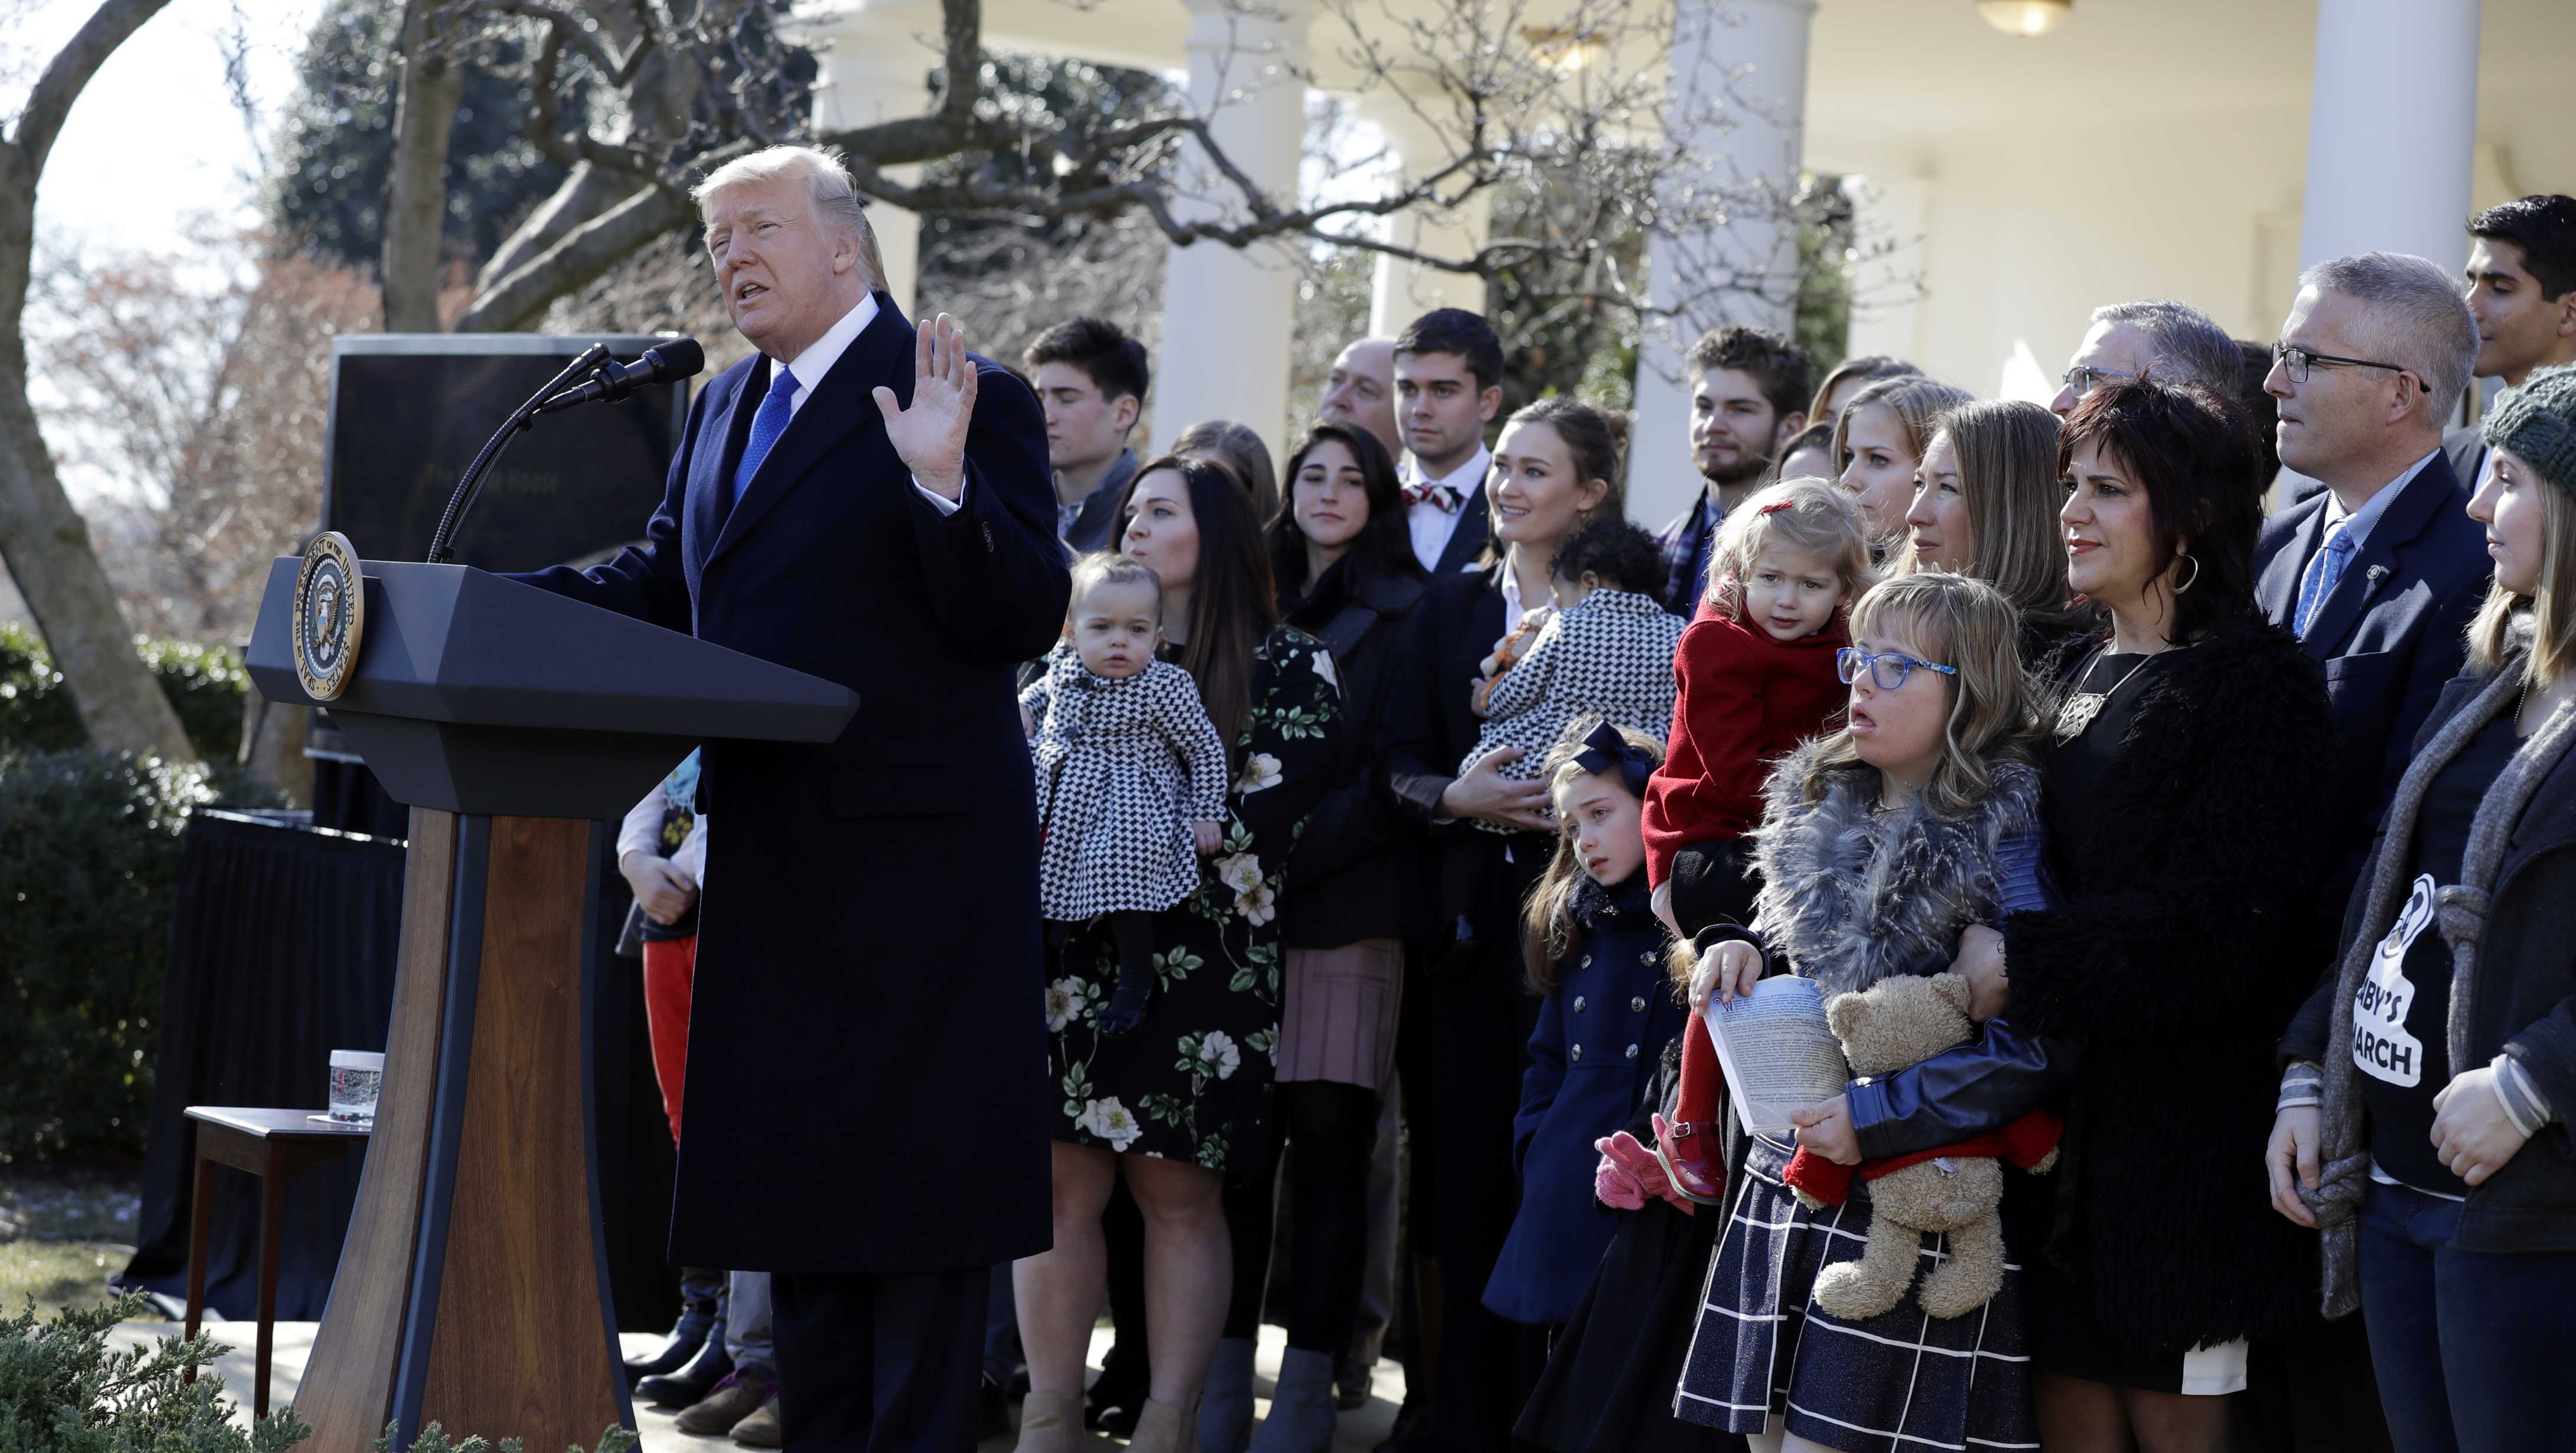 President Donald Trump speaks to the March for Life participants from the Rose Garden of the White House, Friday, Jan. 19, 2018, in Washington.